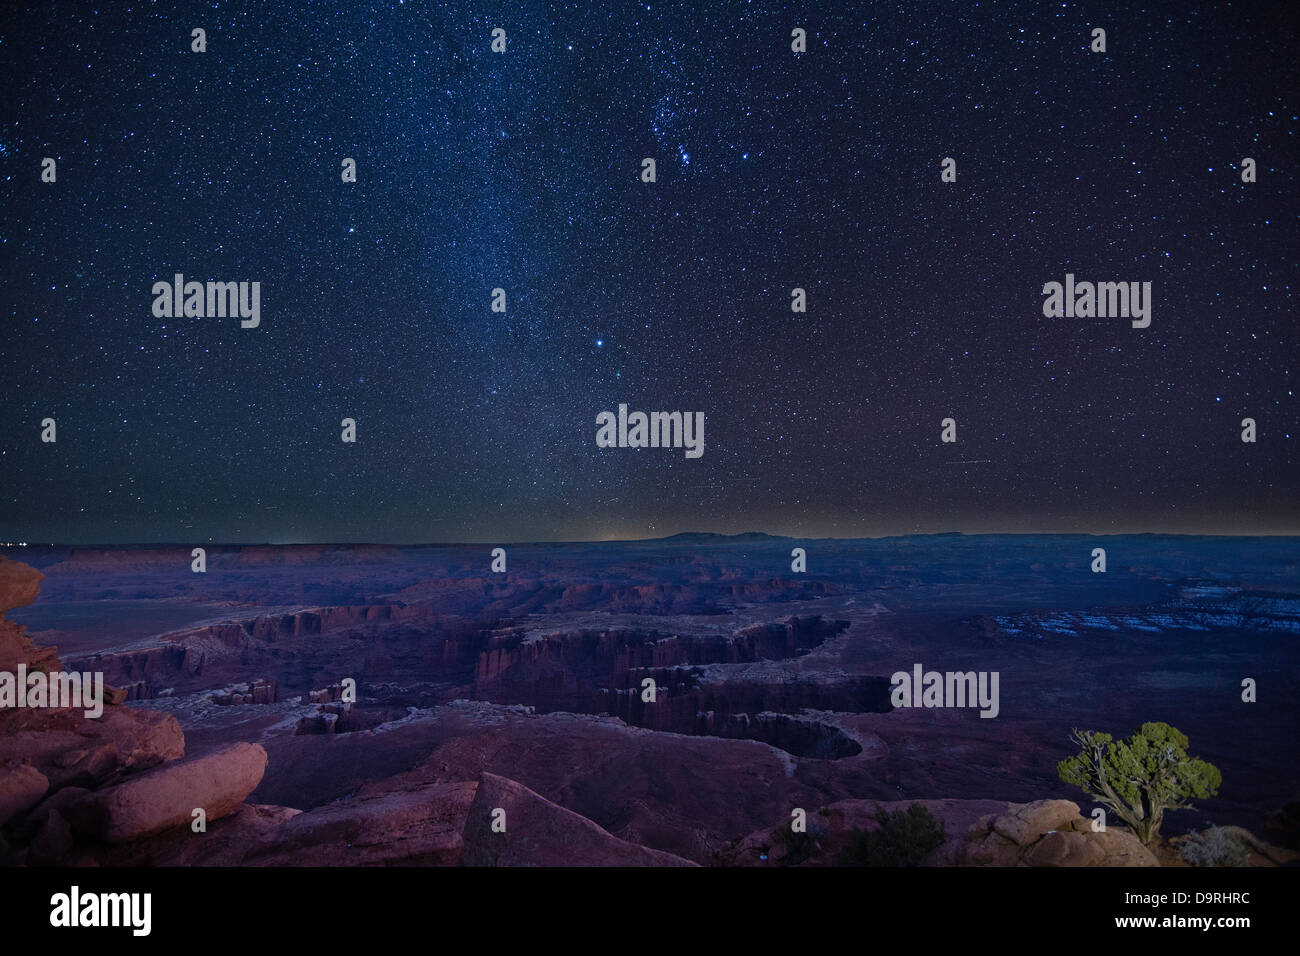 the night sky over Canyonlands from the Island in the Sky, Utah. USA - Stock Image